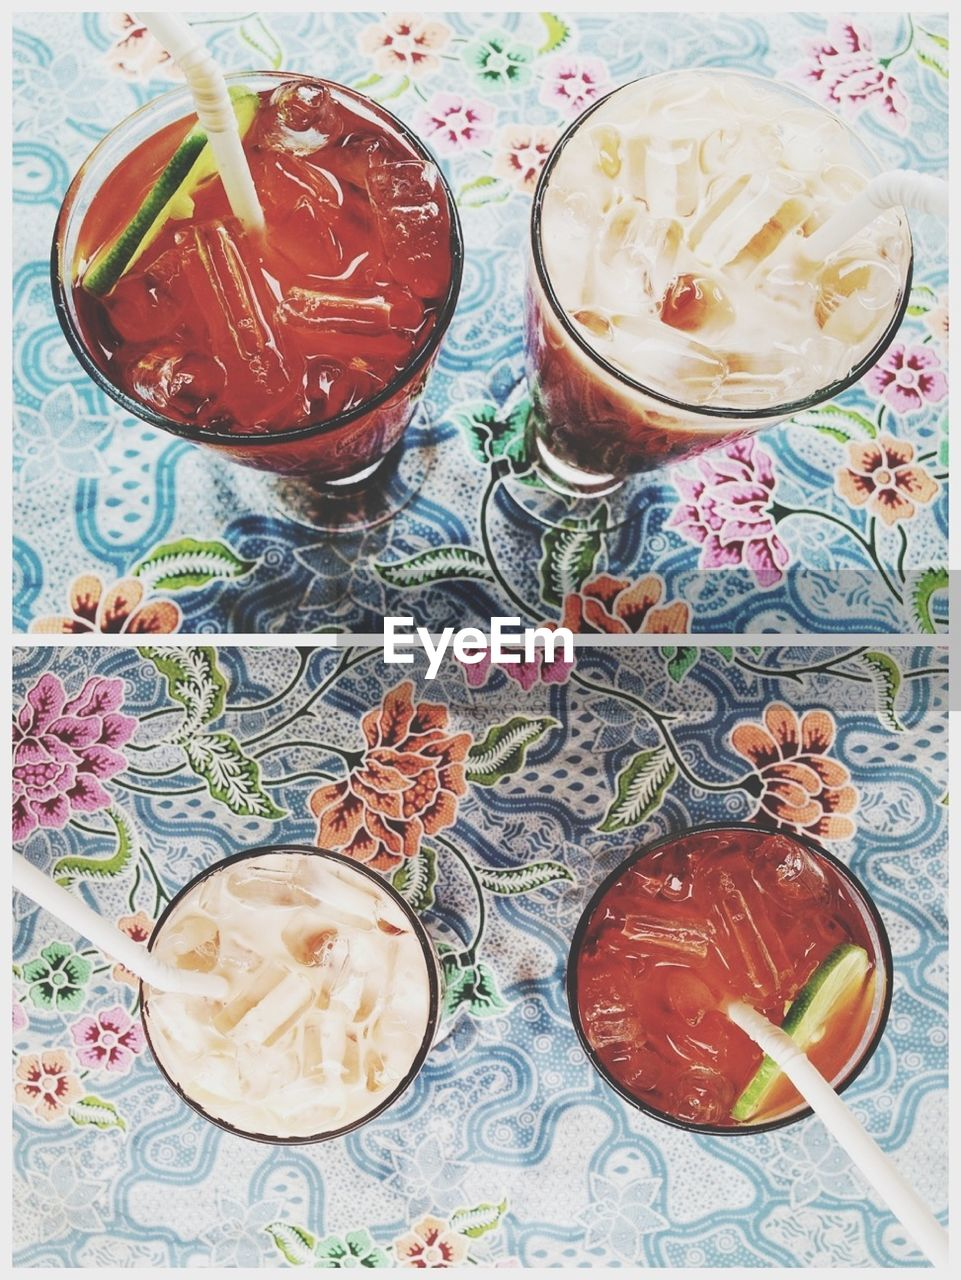 Directly above shot of refreshment drinks on table